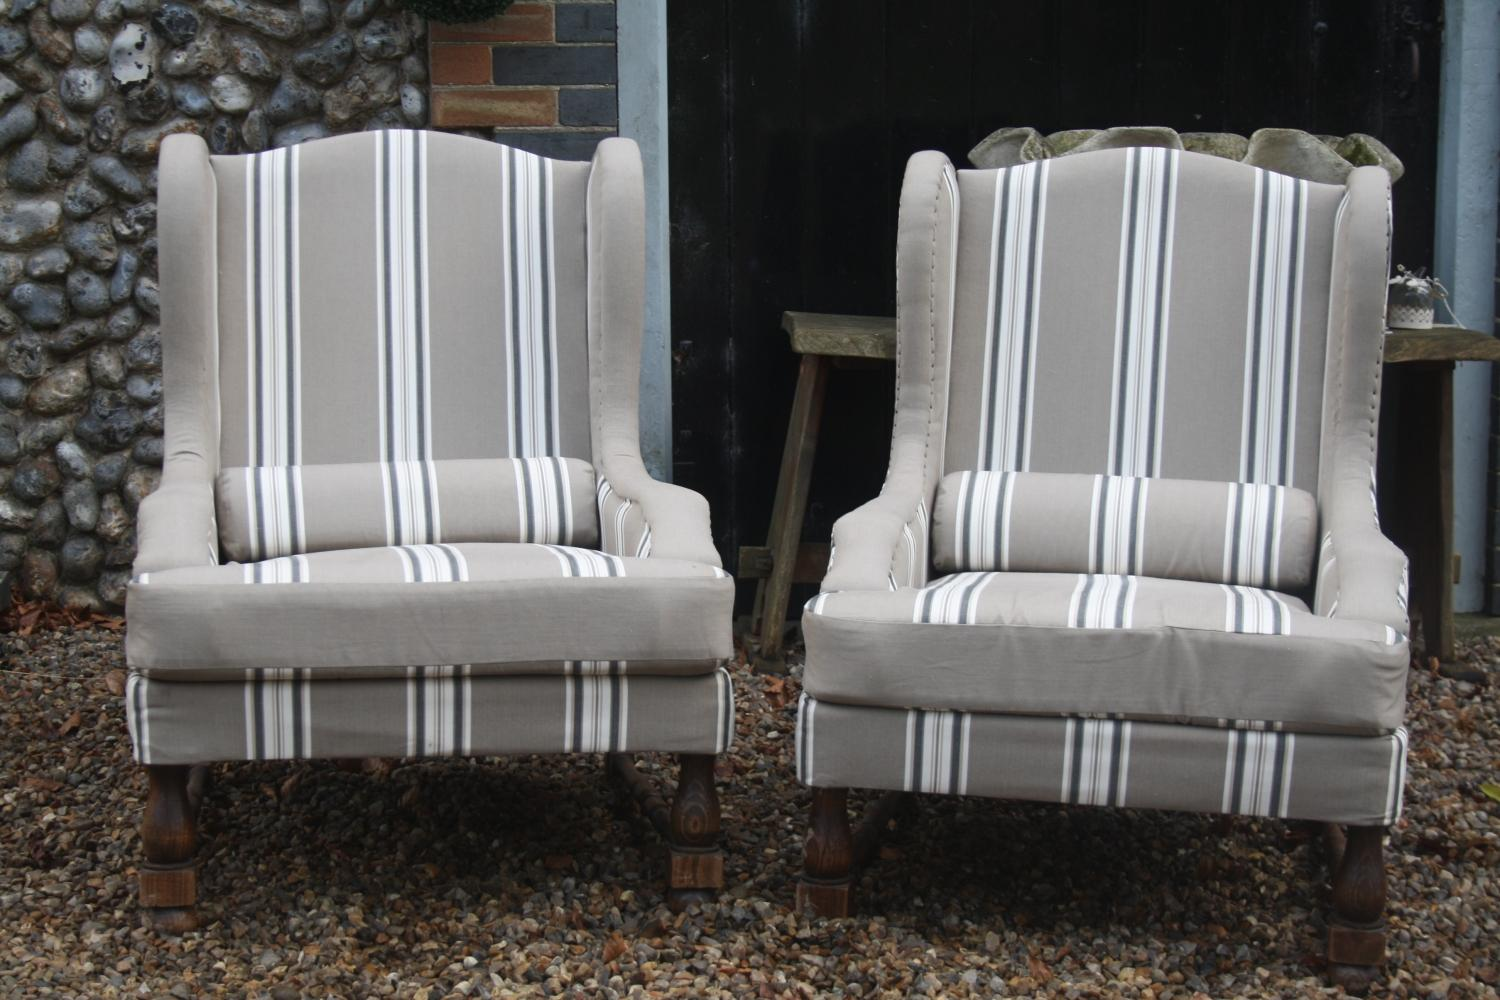 Pair of 1950's reupholstered armchairs